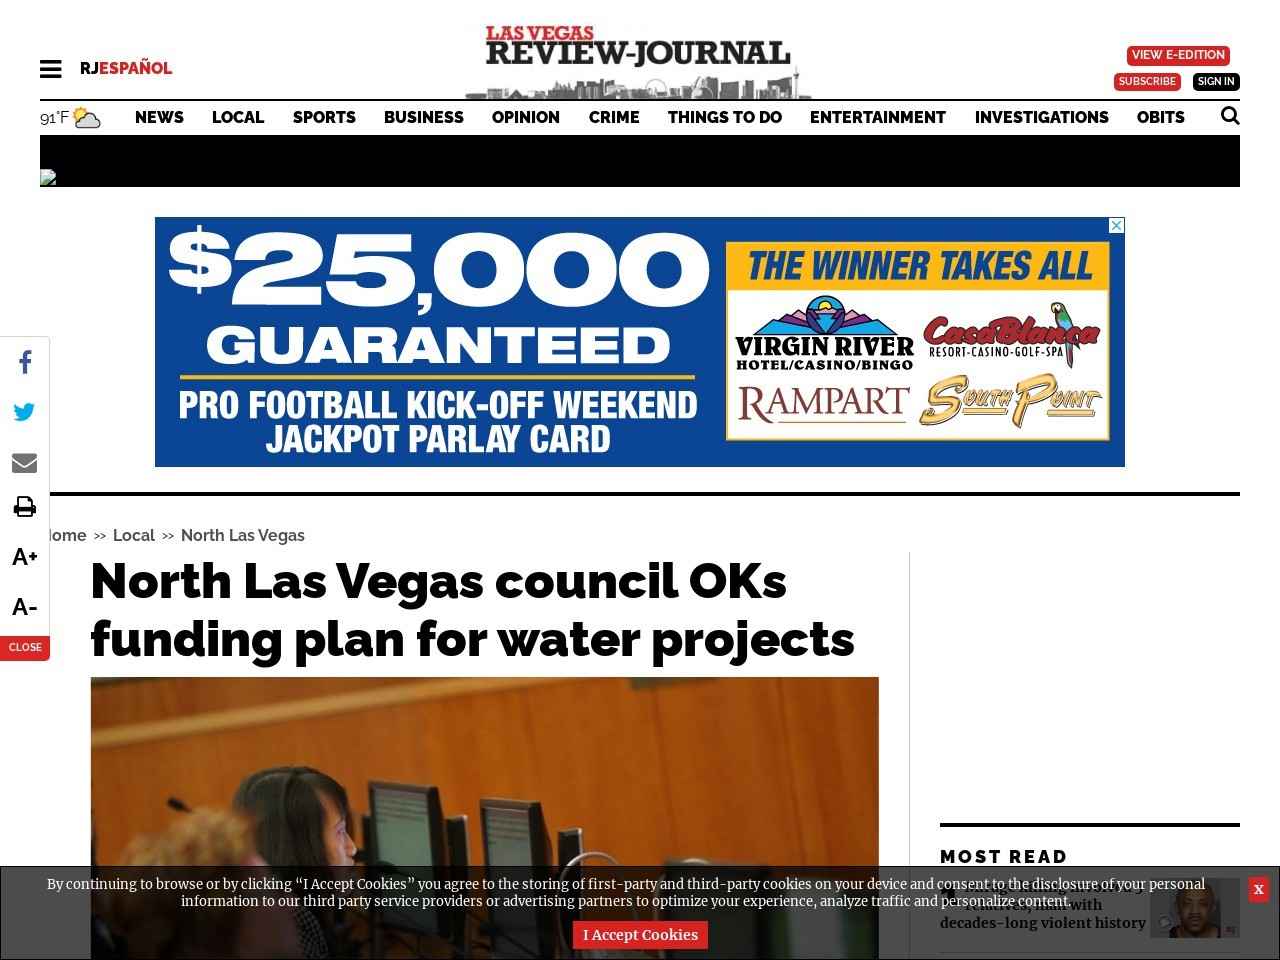 North Las Vegas council OKs funding plan for water projects